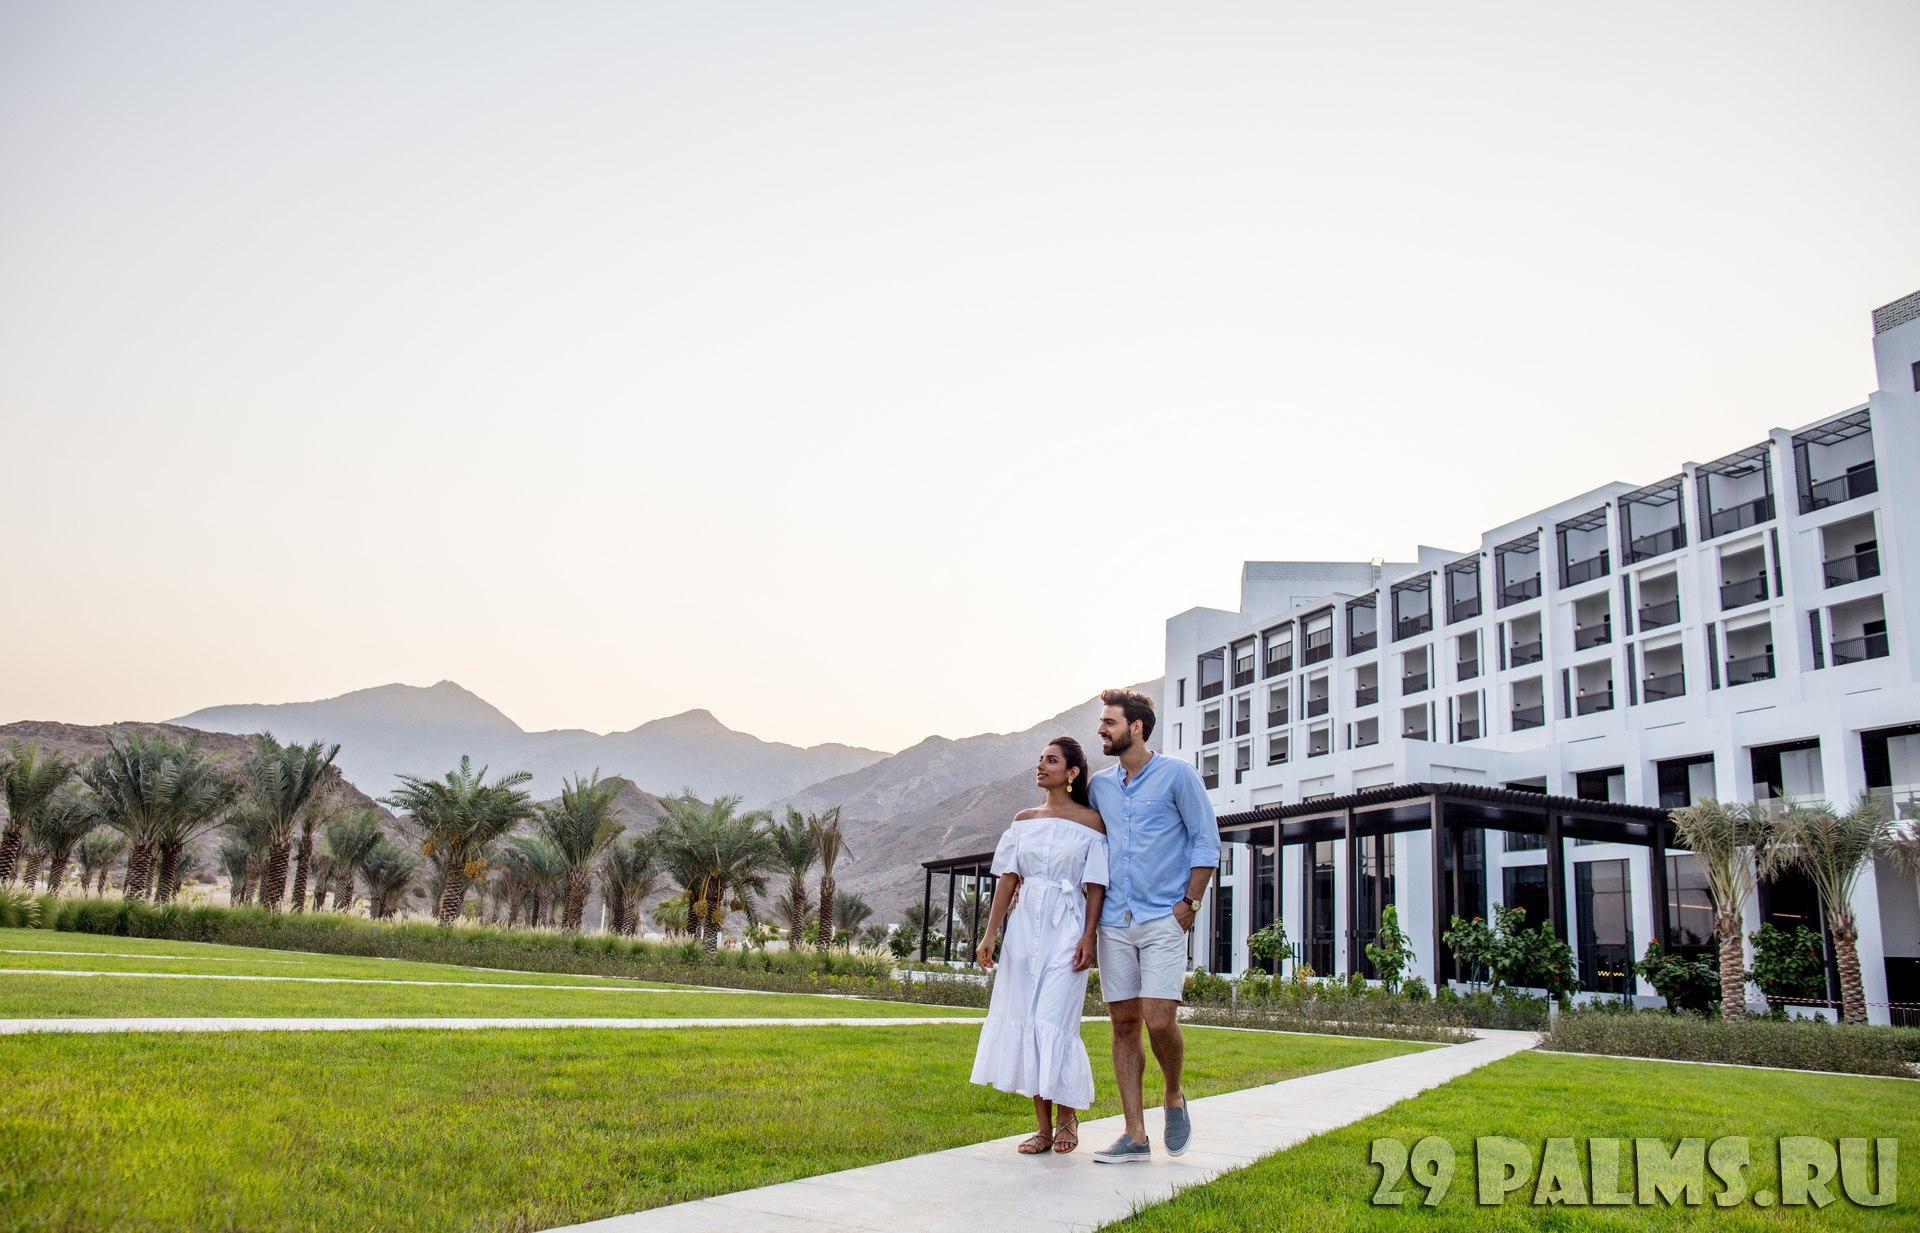 Клуб путешествий Павла Аксенова. ОАЭ. Эмират Фуджейра. InterContinental Fujairah Resort. Resort Gardens